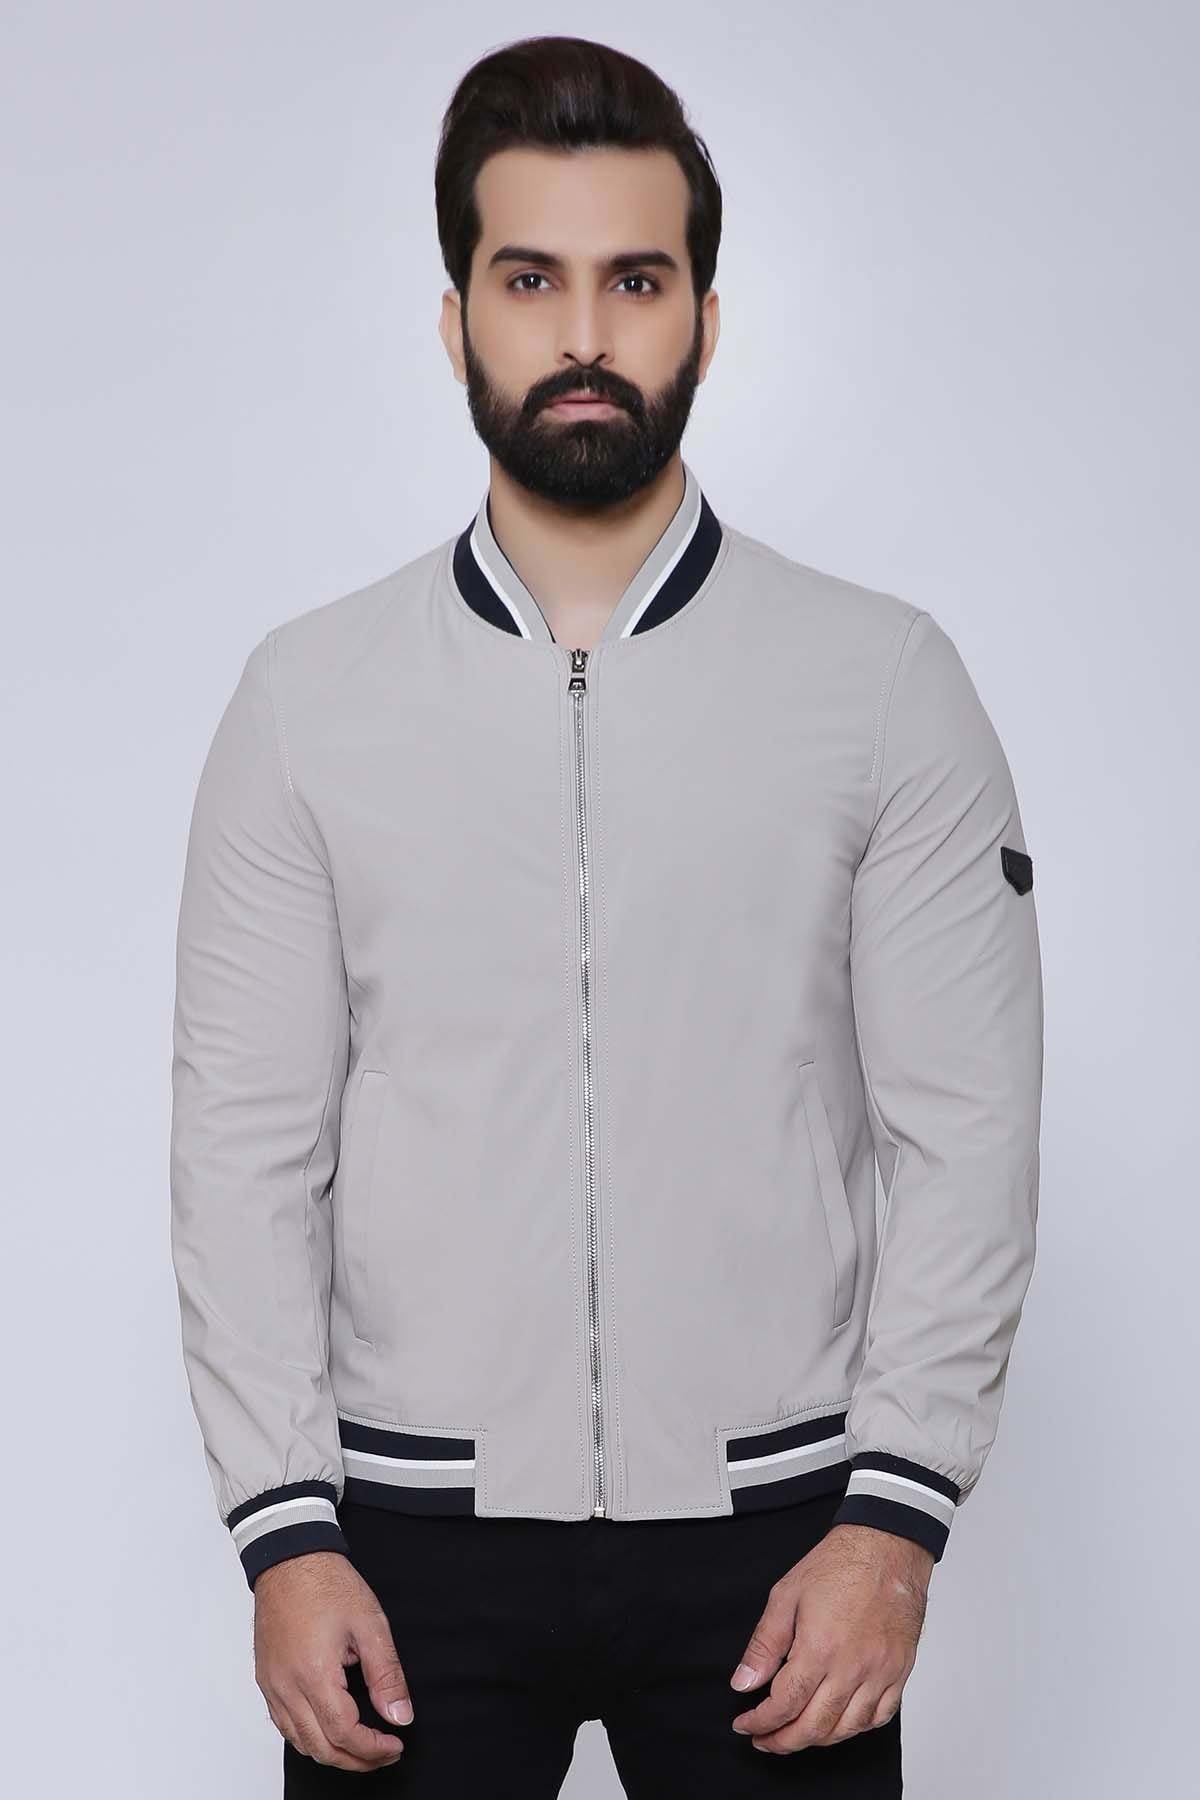 JACKET FULL SLEEVE LIGHT BEIGE - Charcoal - JACKETS